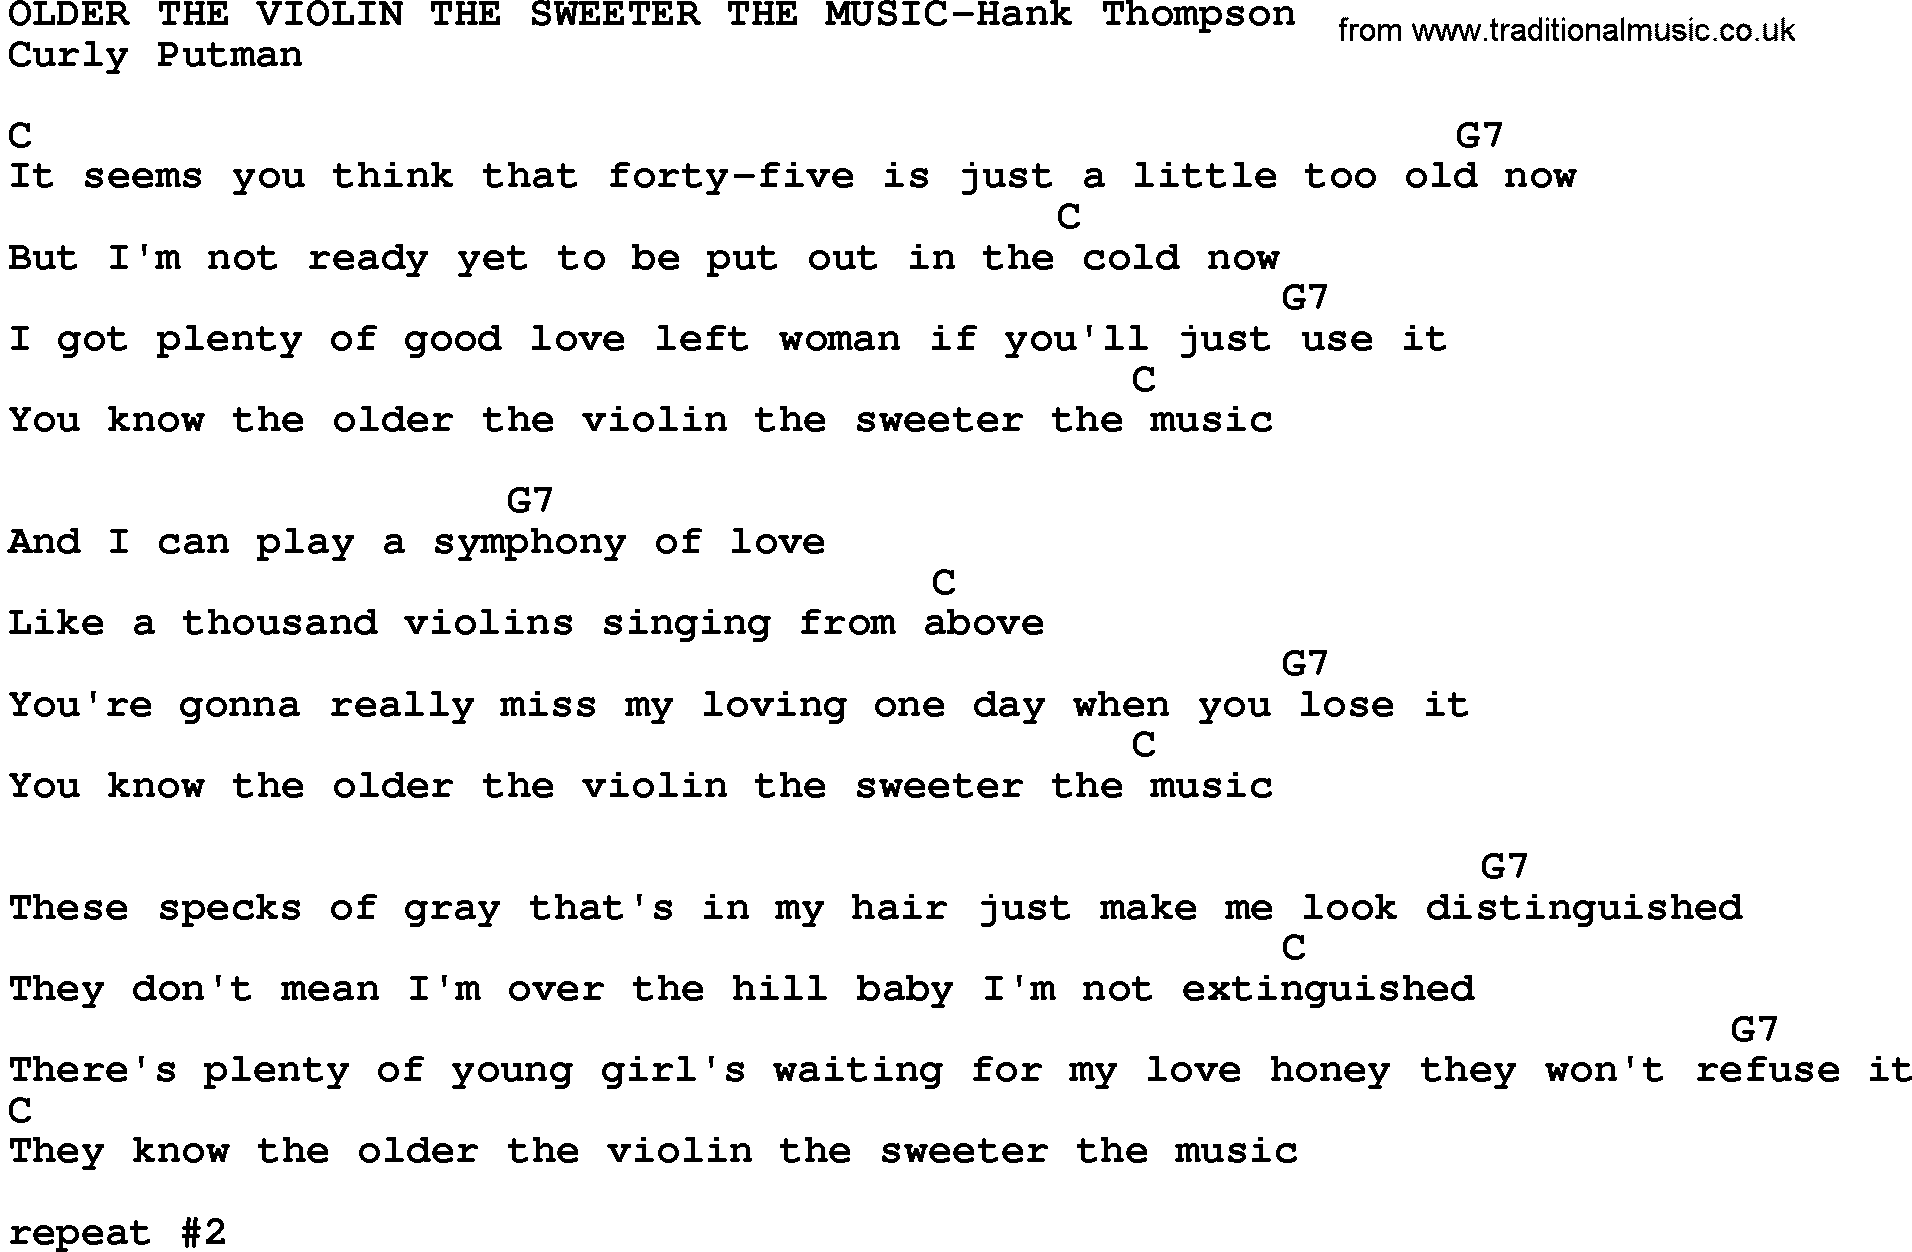 Country Music:Older The Violin The Sweeter The Music-Hank Thompson Lyrics and Chords